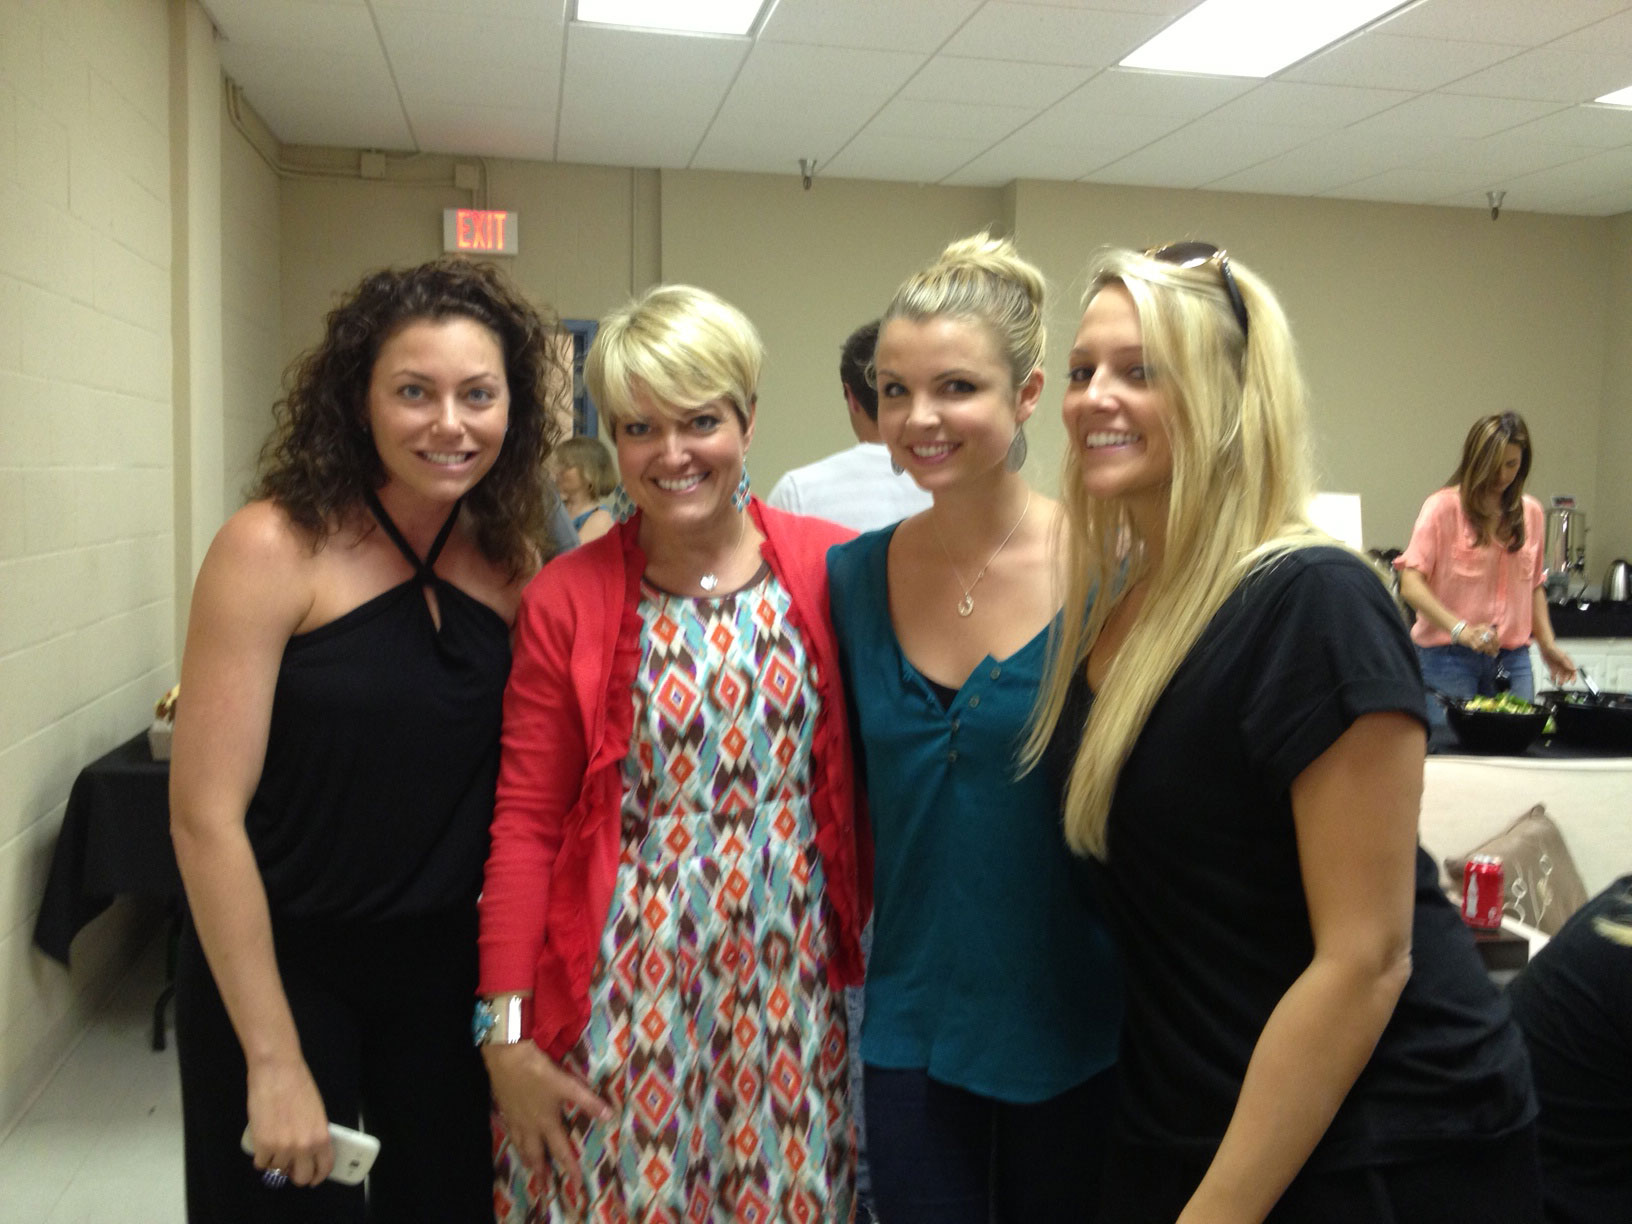 Corinne, Dawn, Andrea and Allie Before the Finale